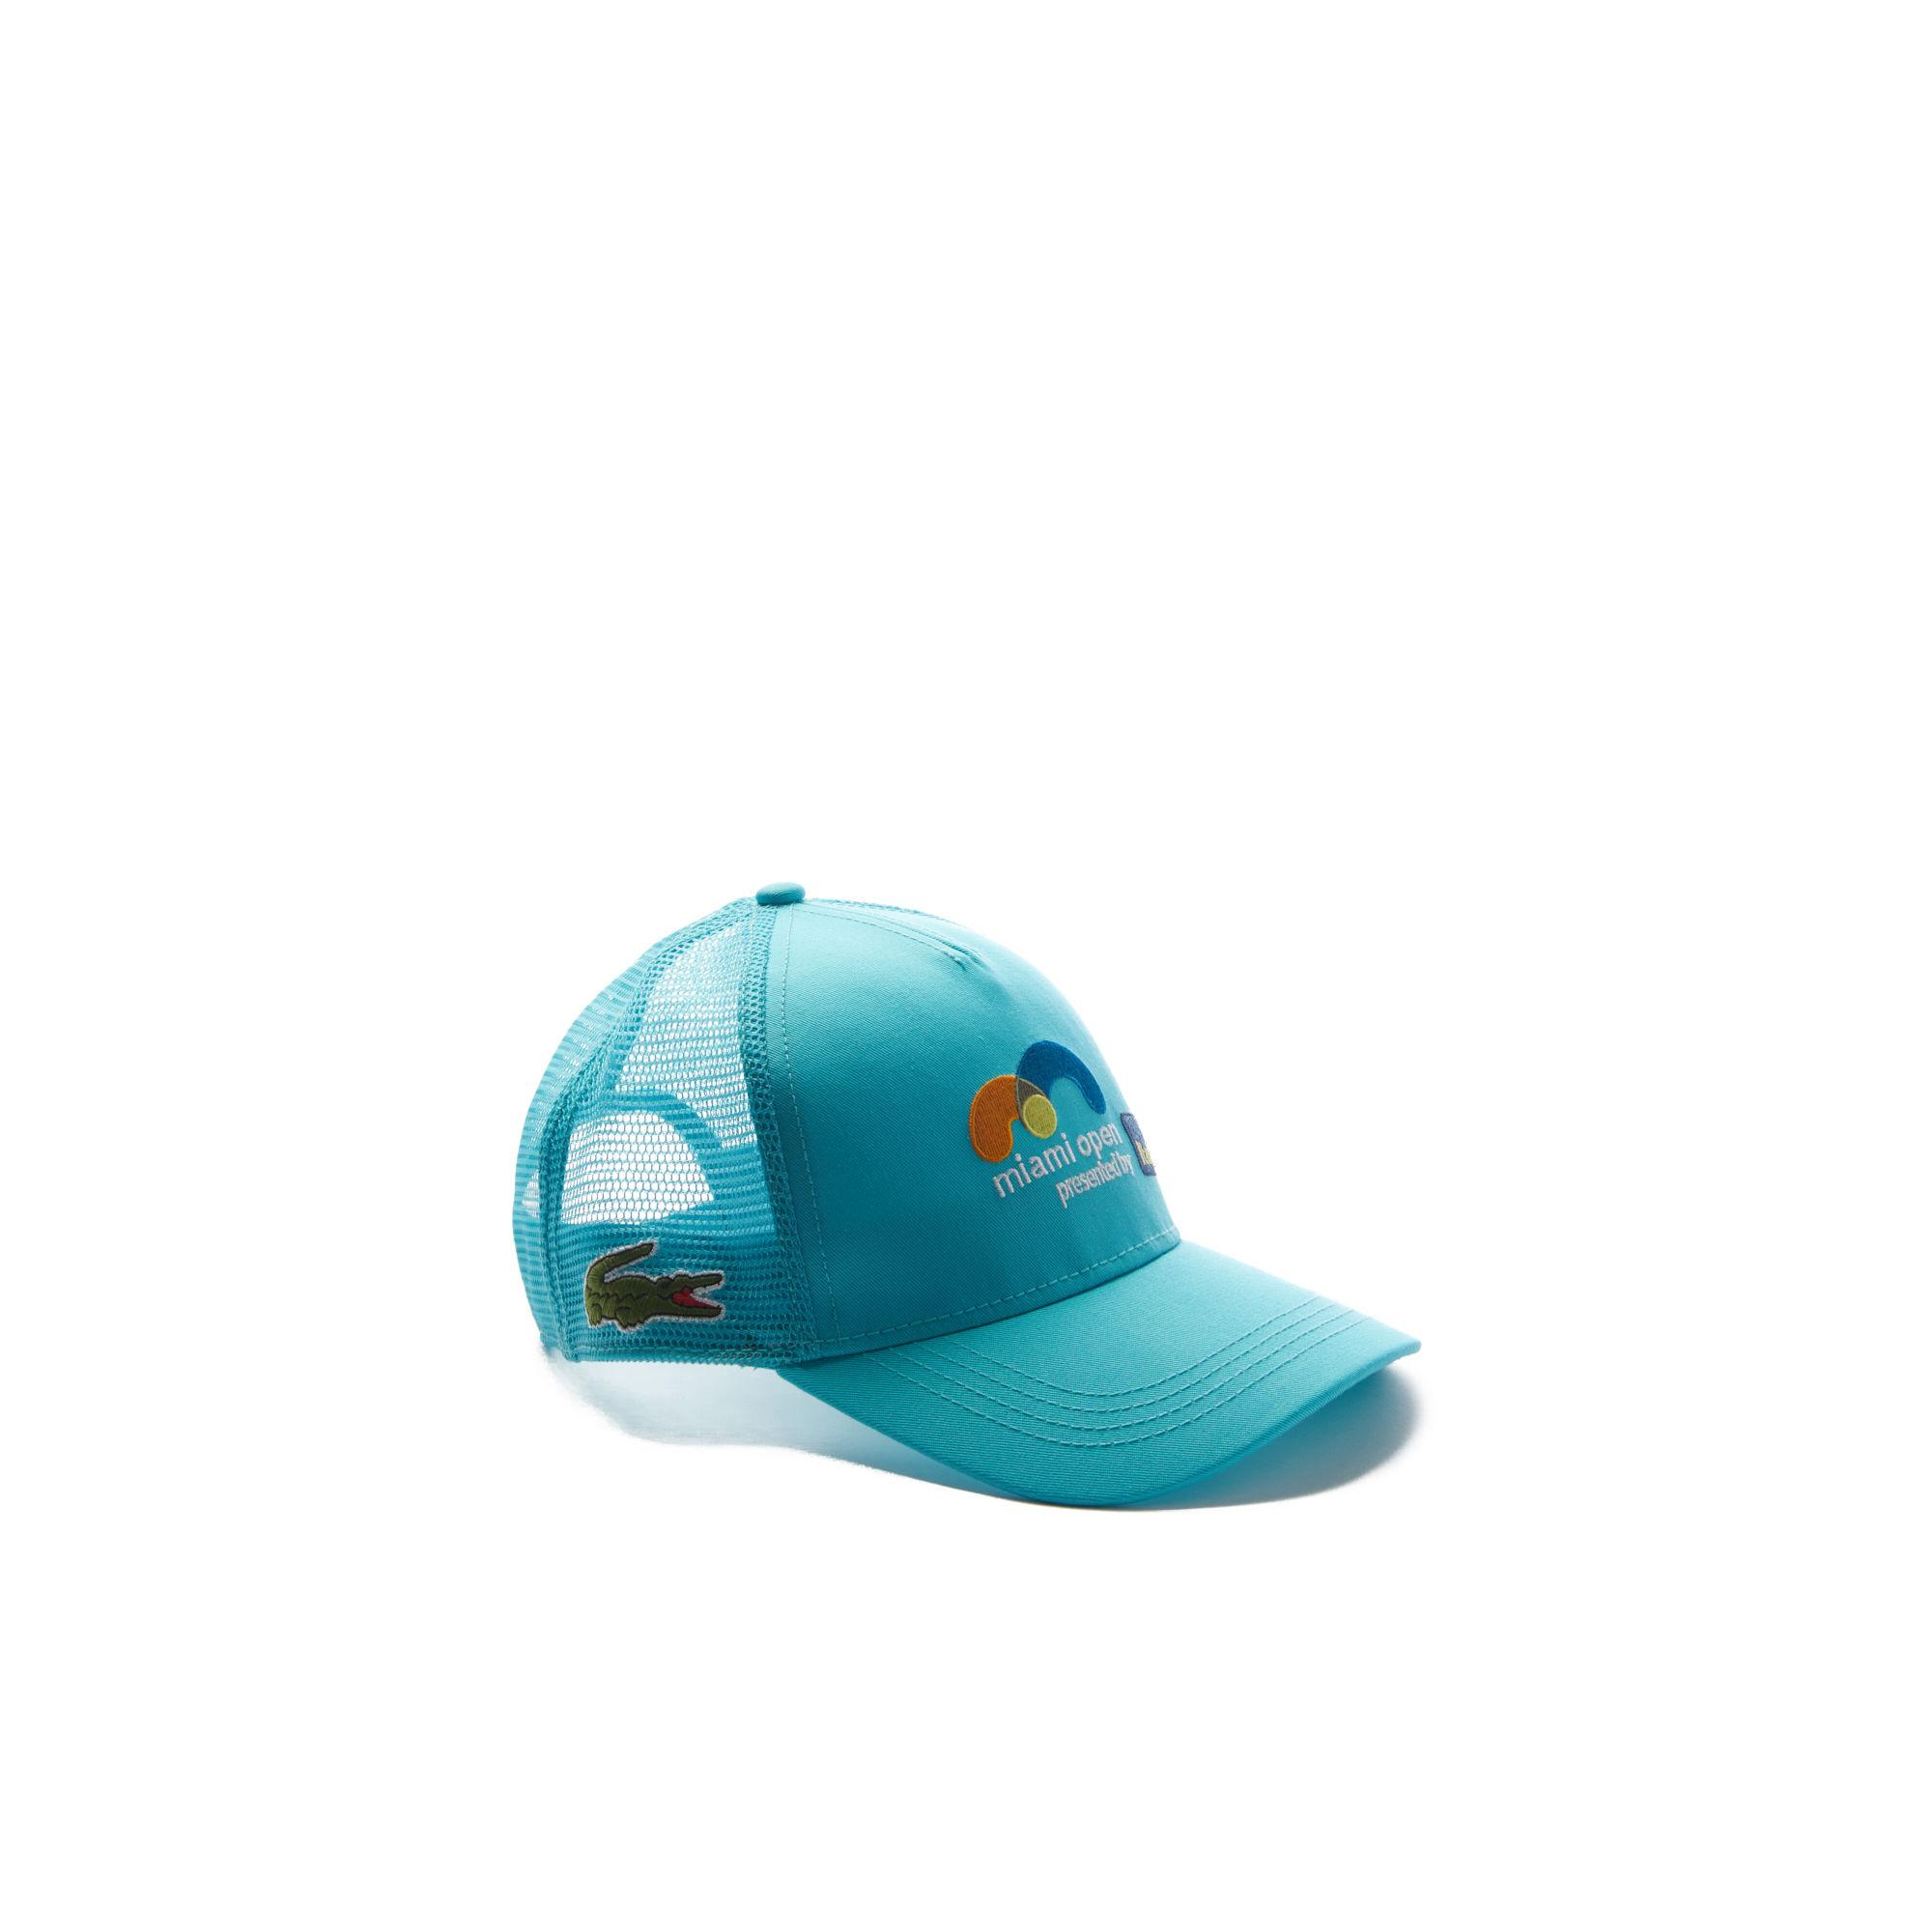 7ccd10b98d5 Lacoste - Blue Sport Miami Open Edition Cap for Men - Lyst. View fullscreen